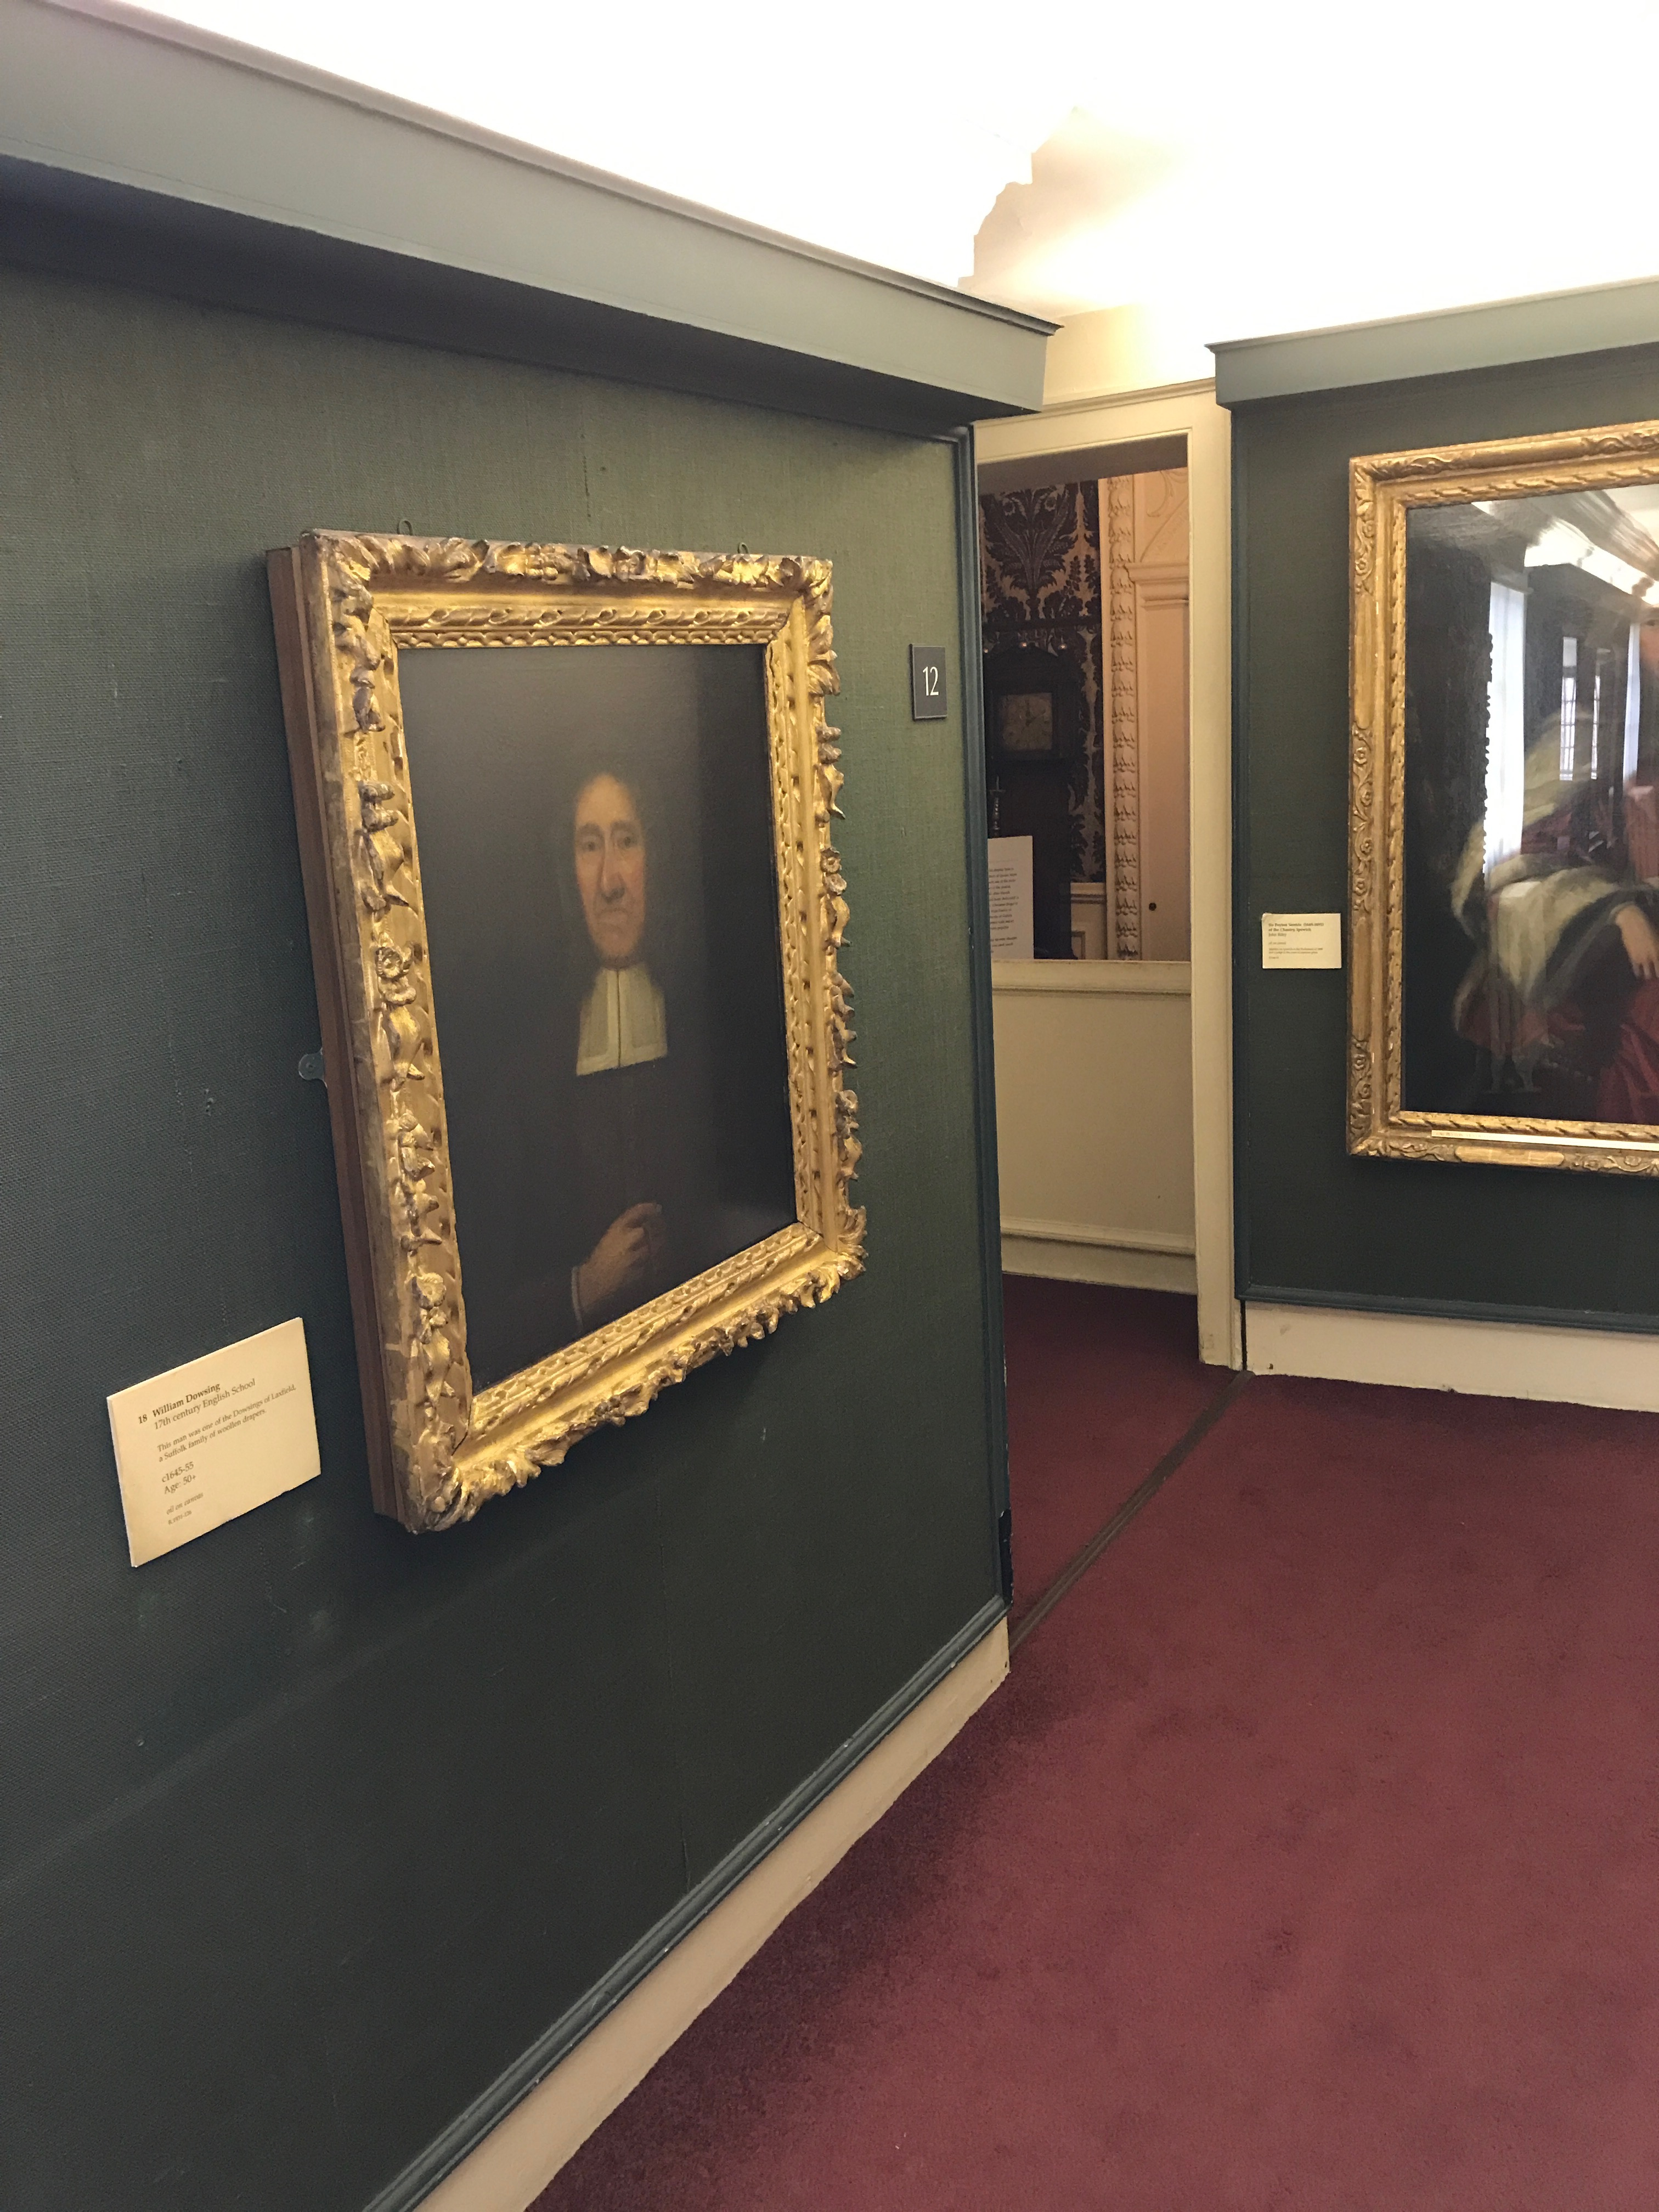 William Dowsing portrair hanging in Wolsey Art Gallery, Ipswich, England.